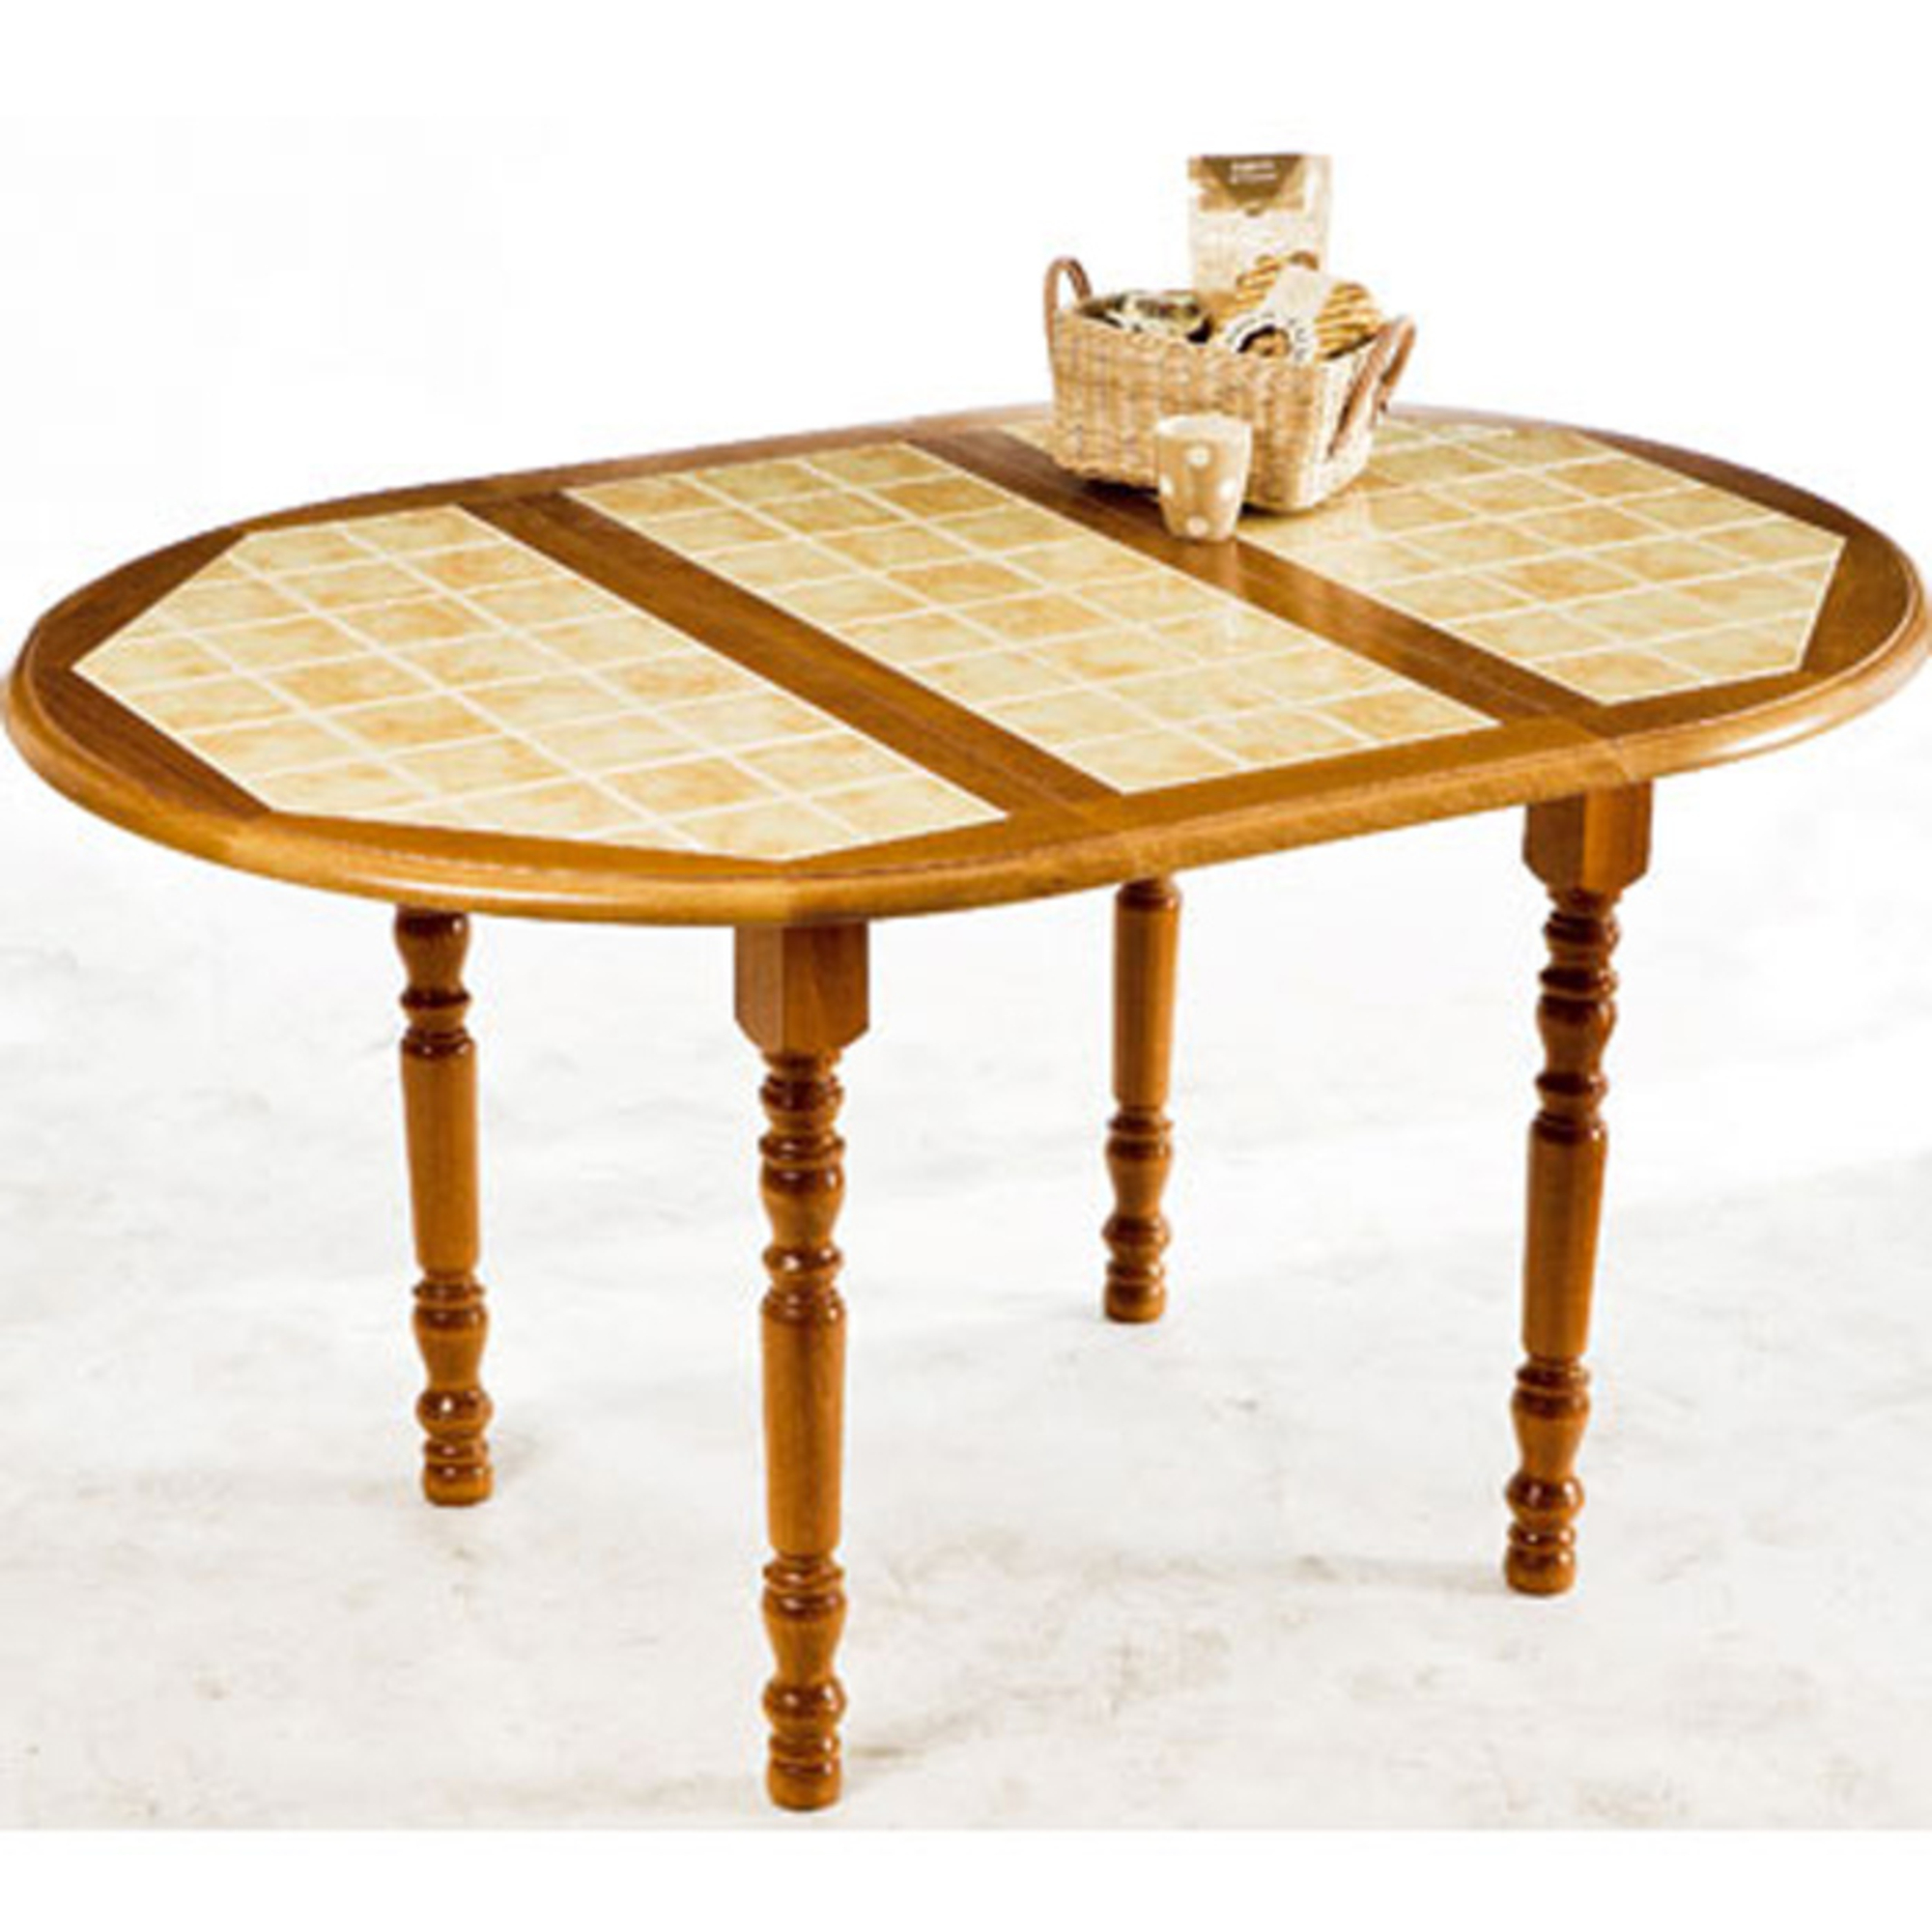 Table fixe ronde carrel e allonge cardamone ch ne - Petite table ronde de cuisine ...